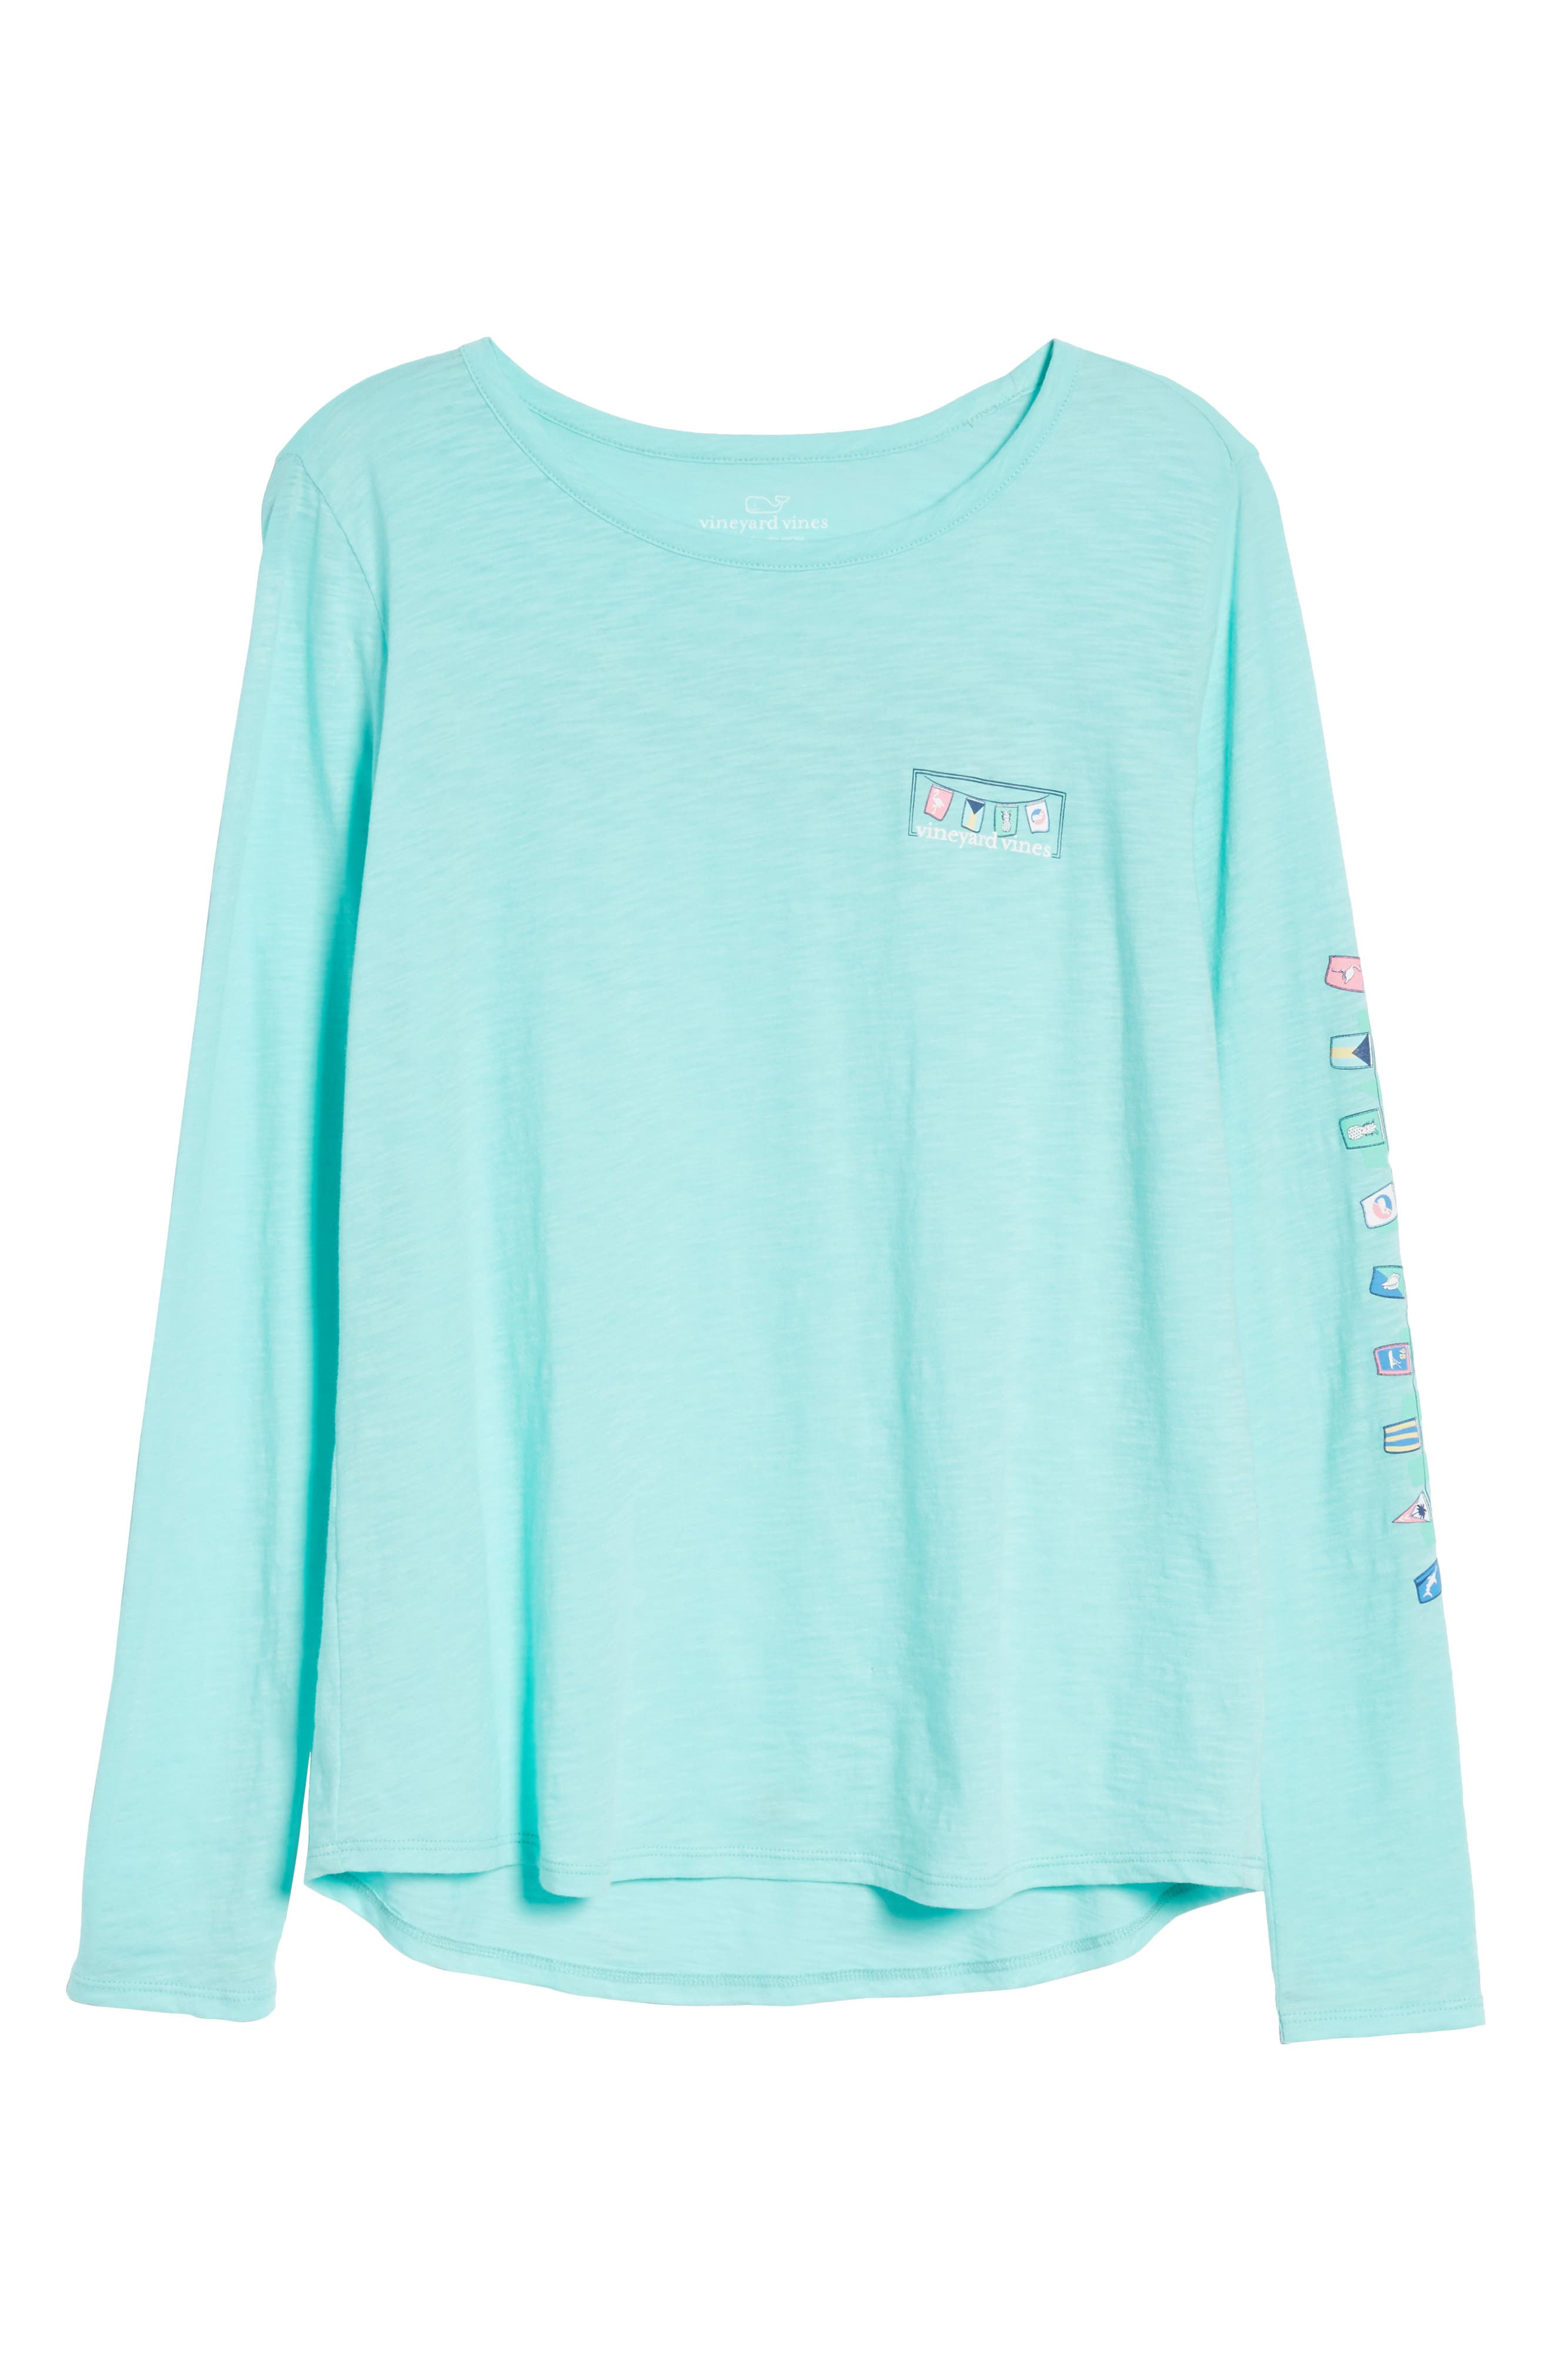 Rafter Long Sleeve Cotton Tee,                             Alternate thumbnail 7, color,                             416